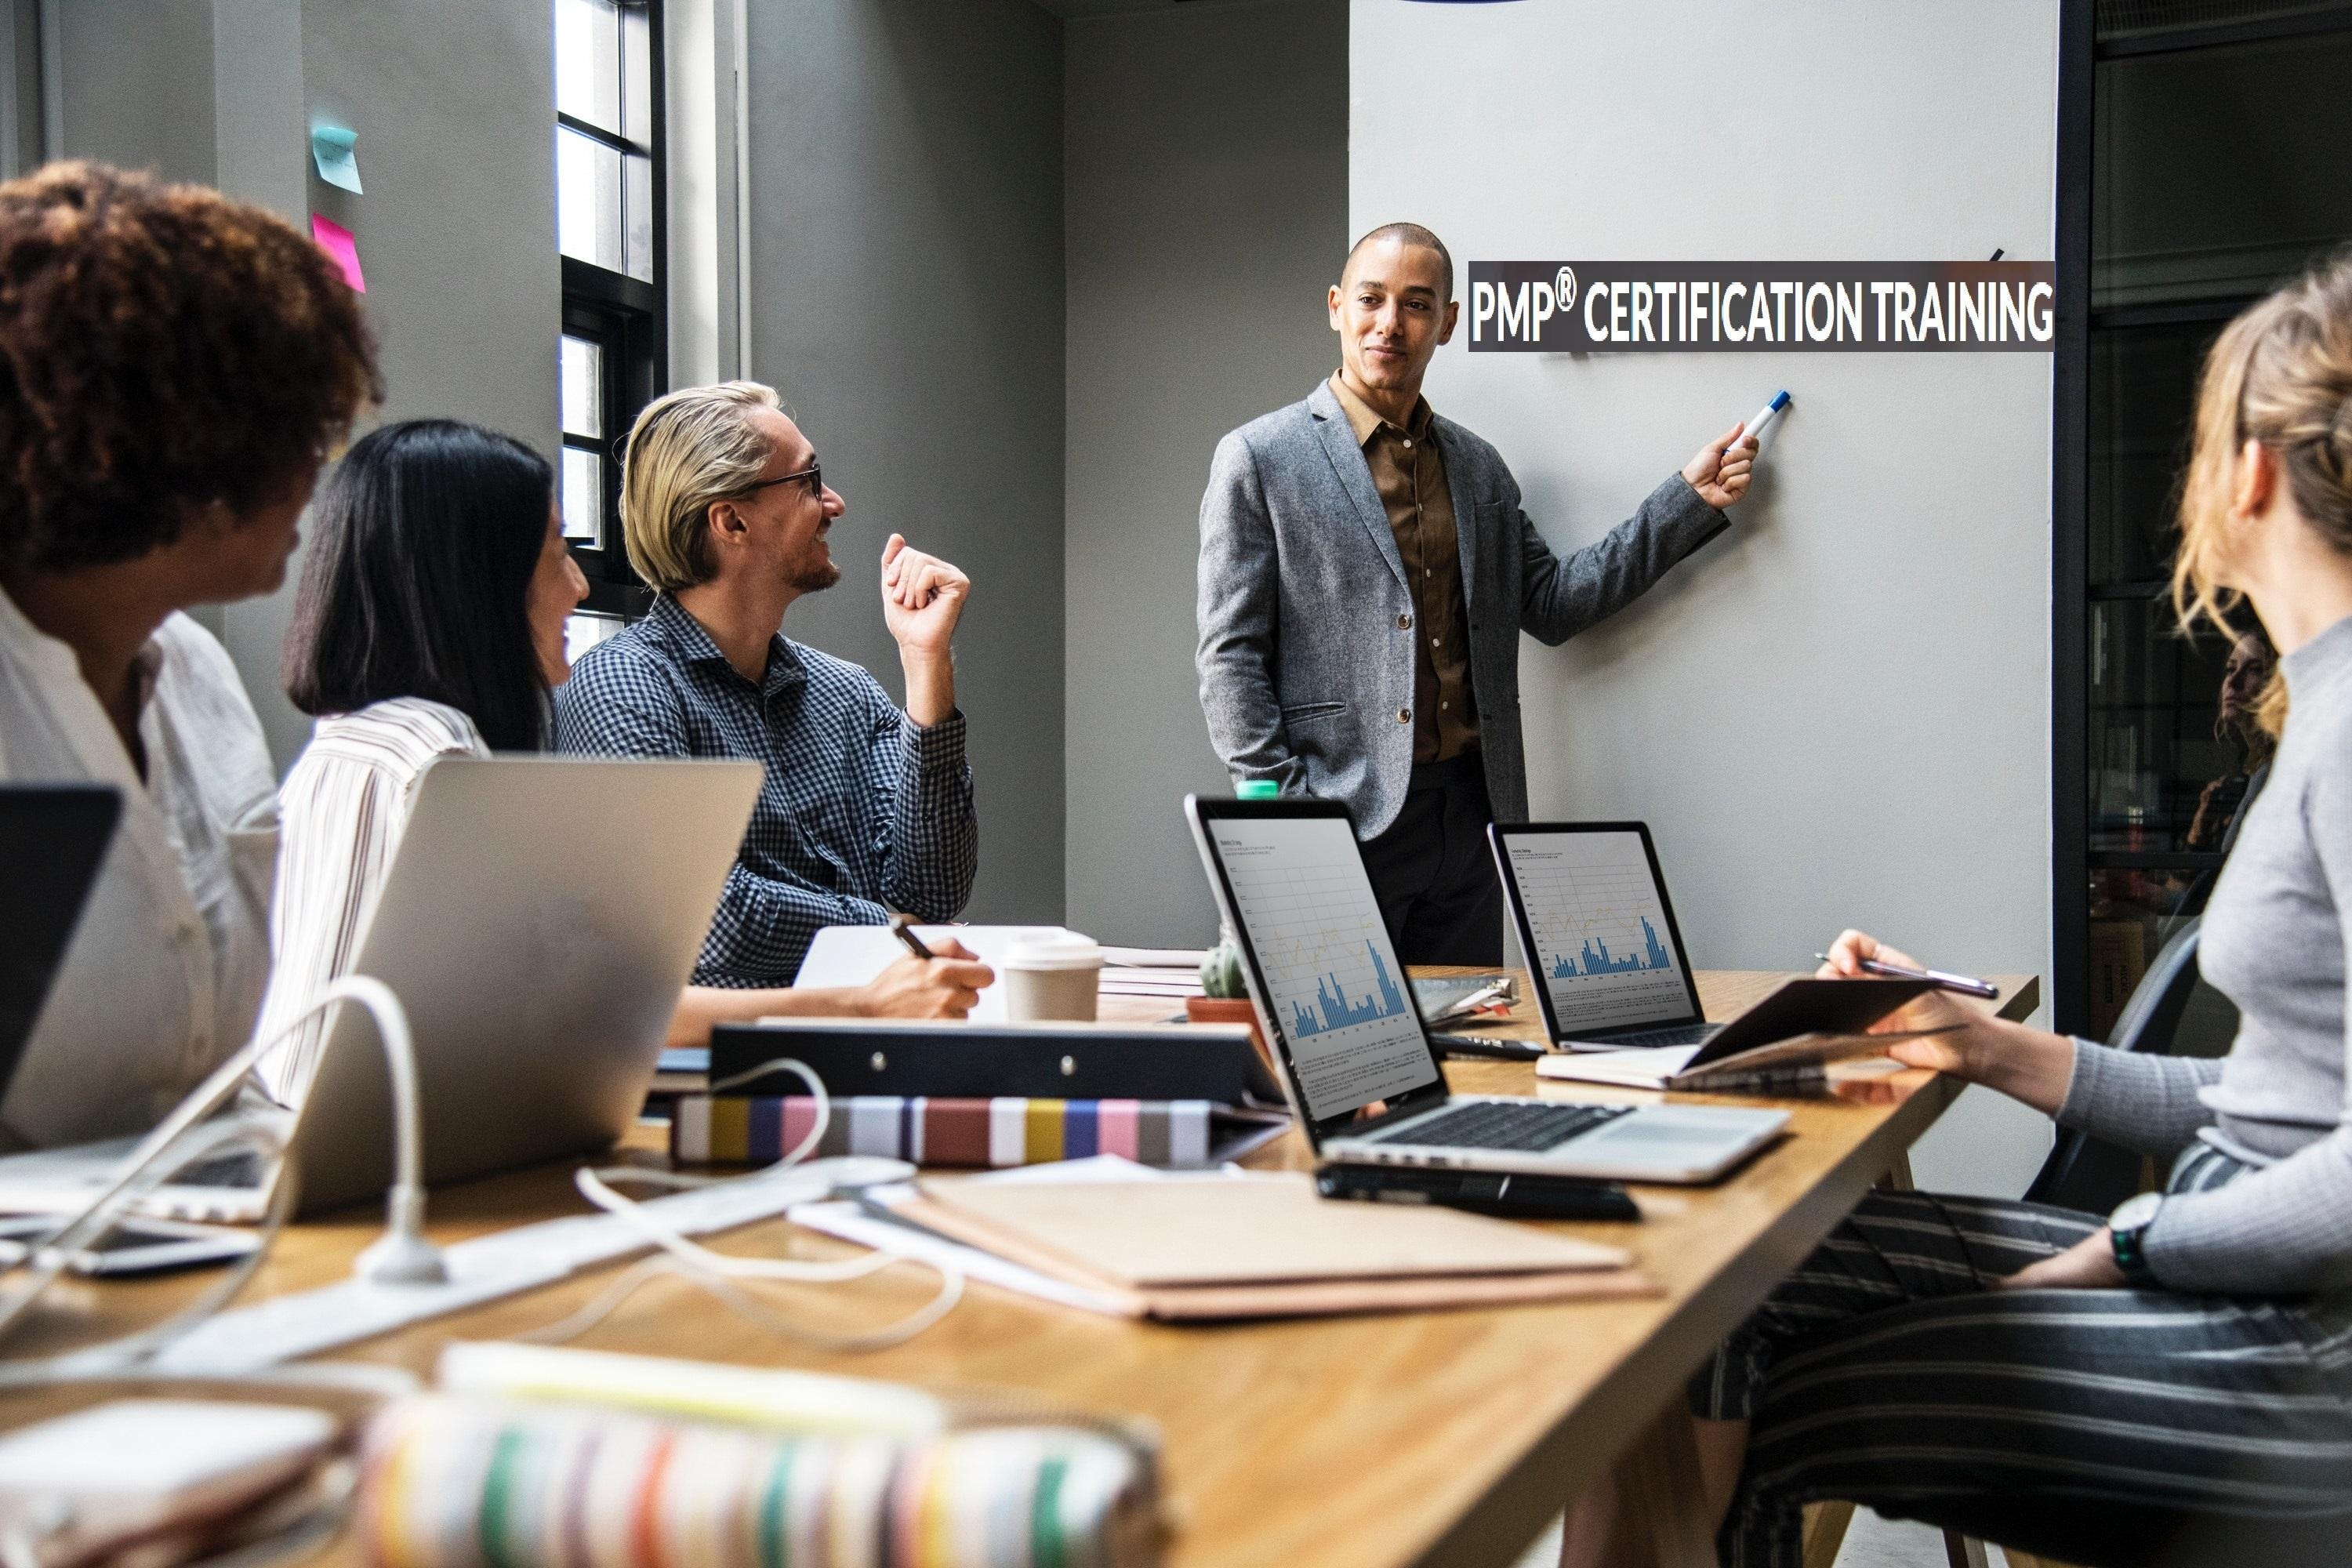 4 Day Pmp Certification Training Course In Chicago Il At Regus